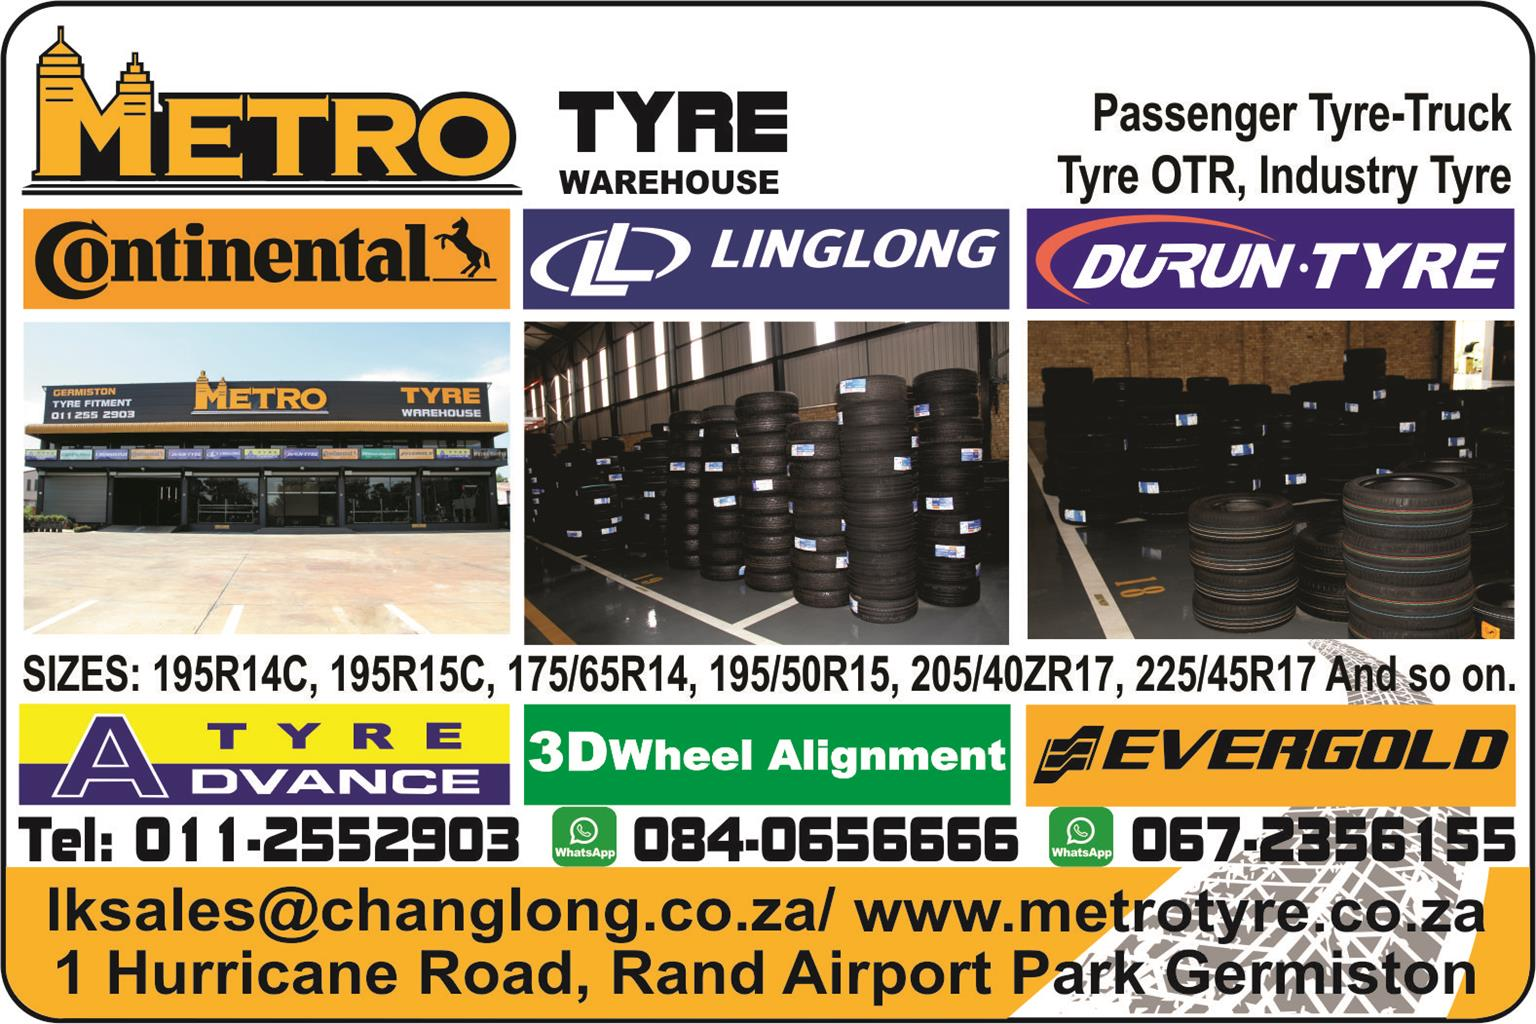 METRO TYRE WAREHOUSE